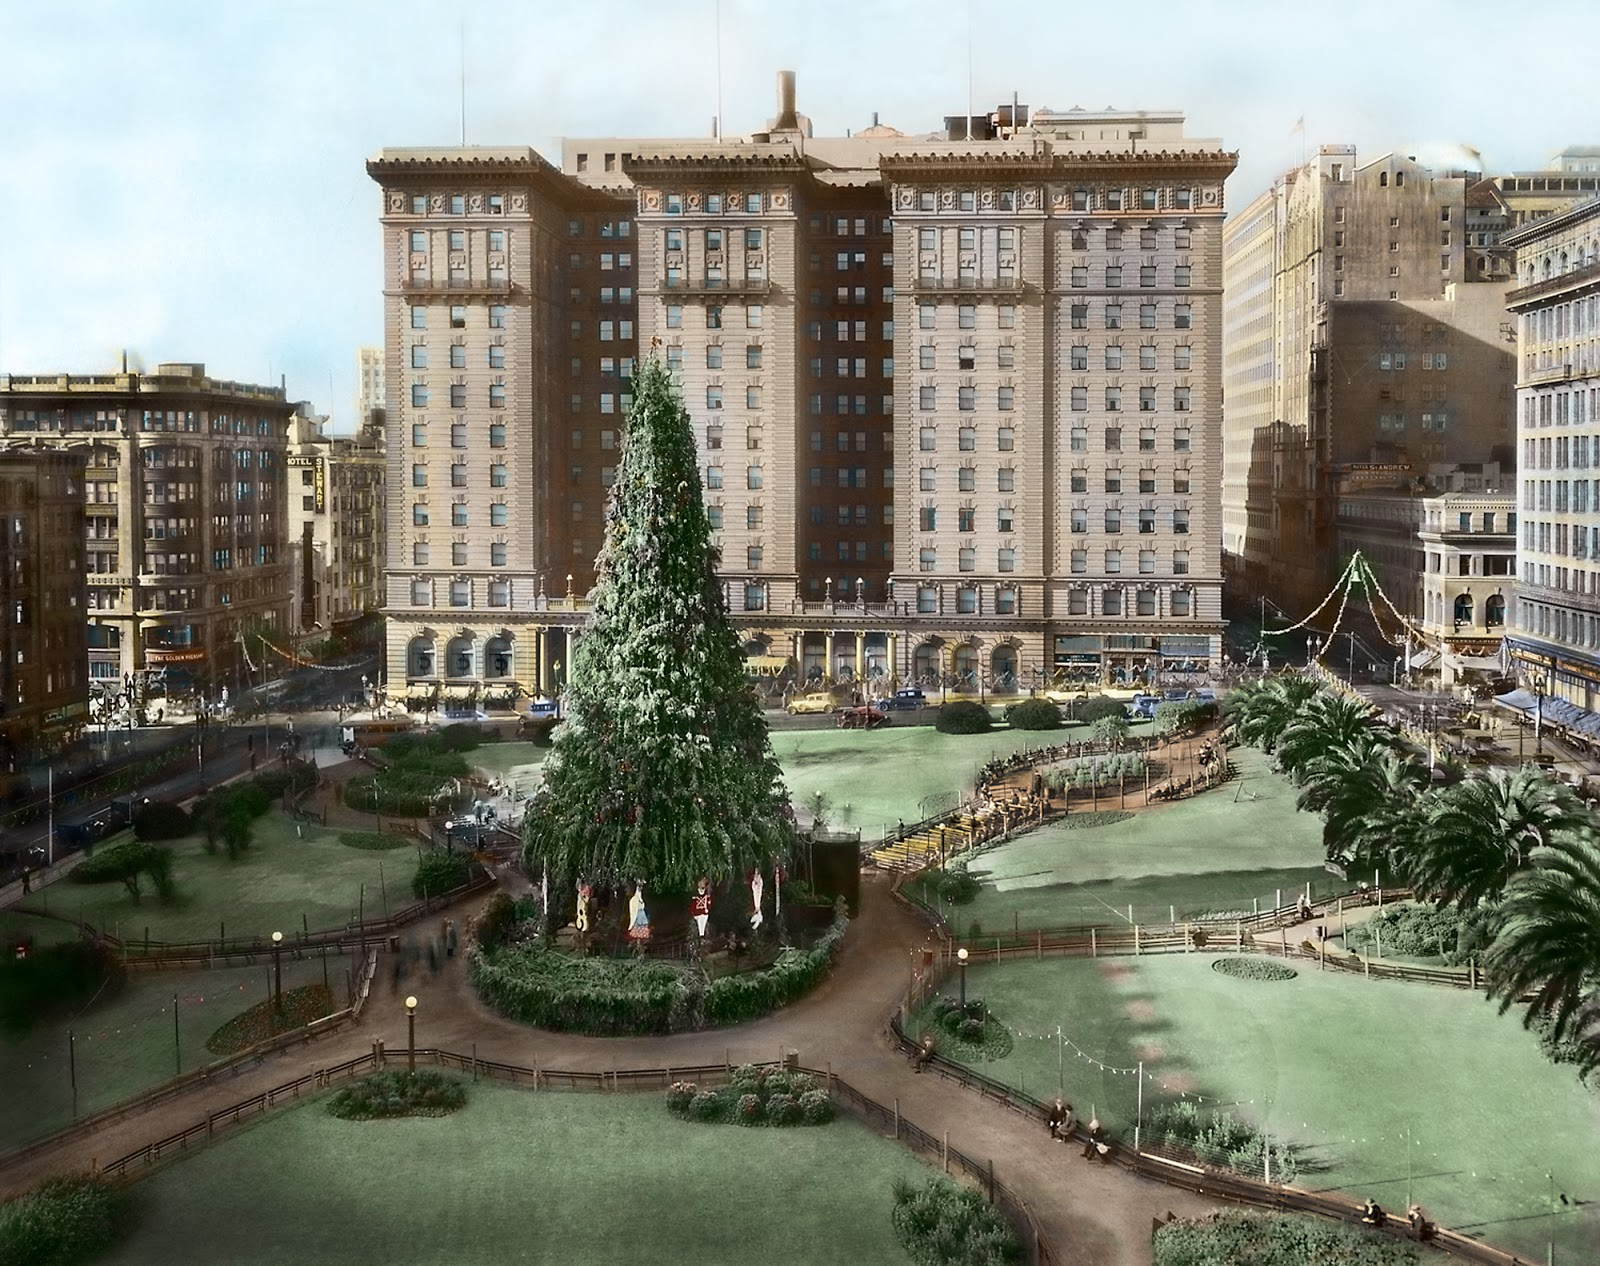 The Christmas tree in Union Square, San Francisco, 1910. Original black-and-white s  ource photograph: Collection of the Oakland Public Library history room.   Hand-tinted version   © Bennett Hall 2015.